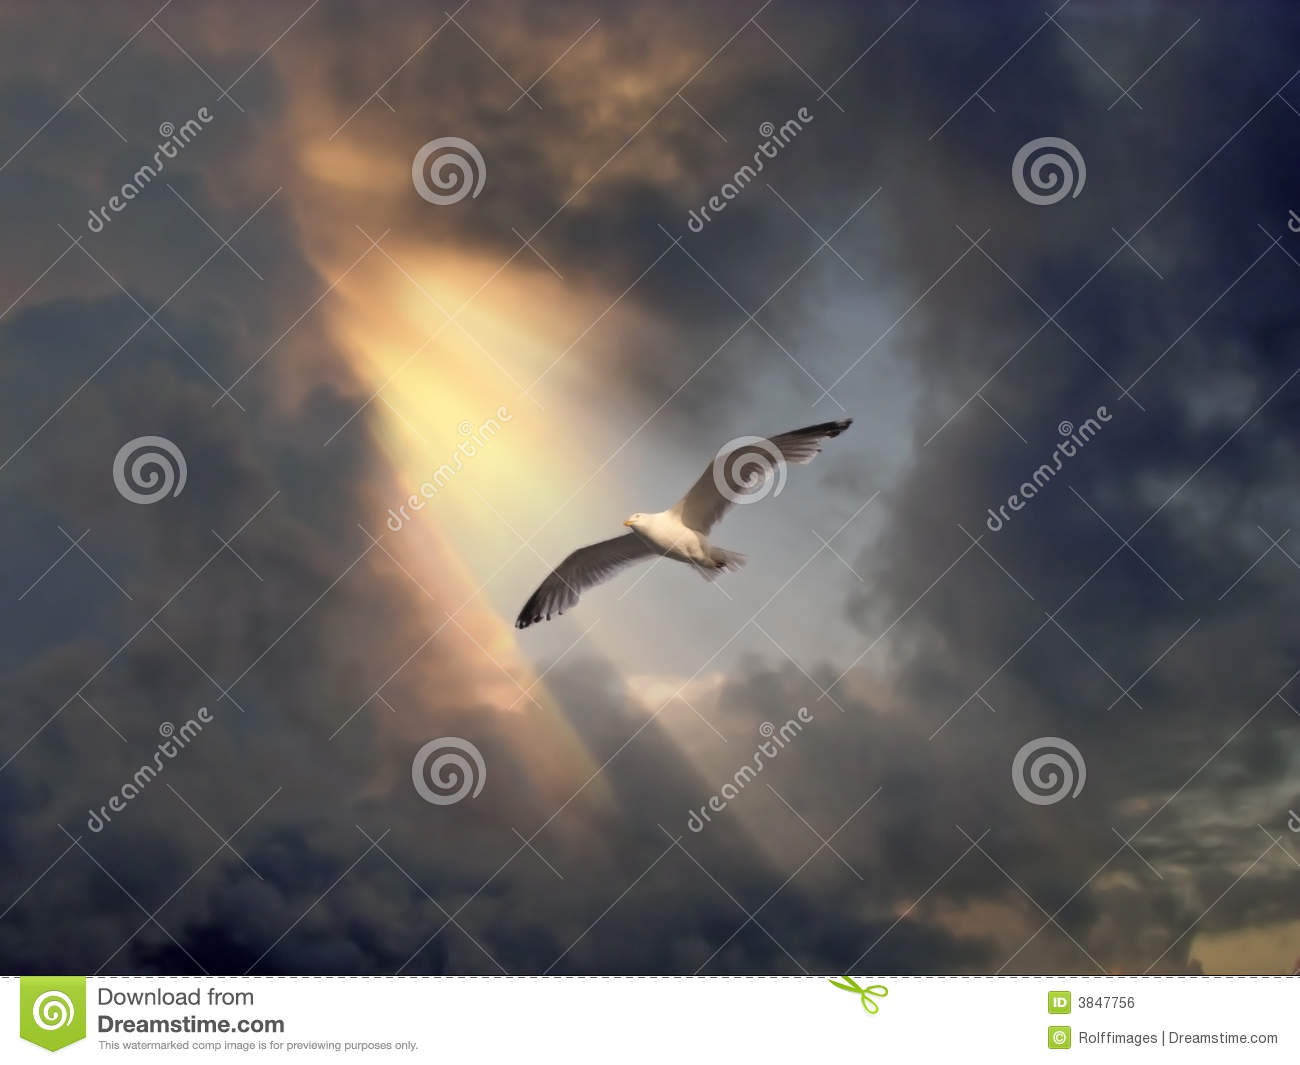 Flying Birds Free Stock Photos Download 3 416 Free Stock: Bird In Flight Stock Photo. Image Of Jesus, Landscape